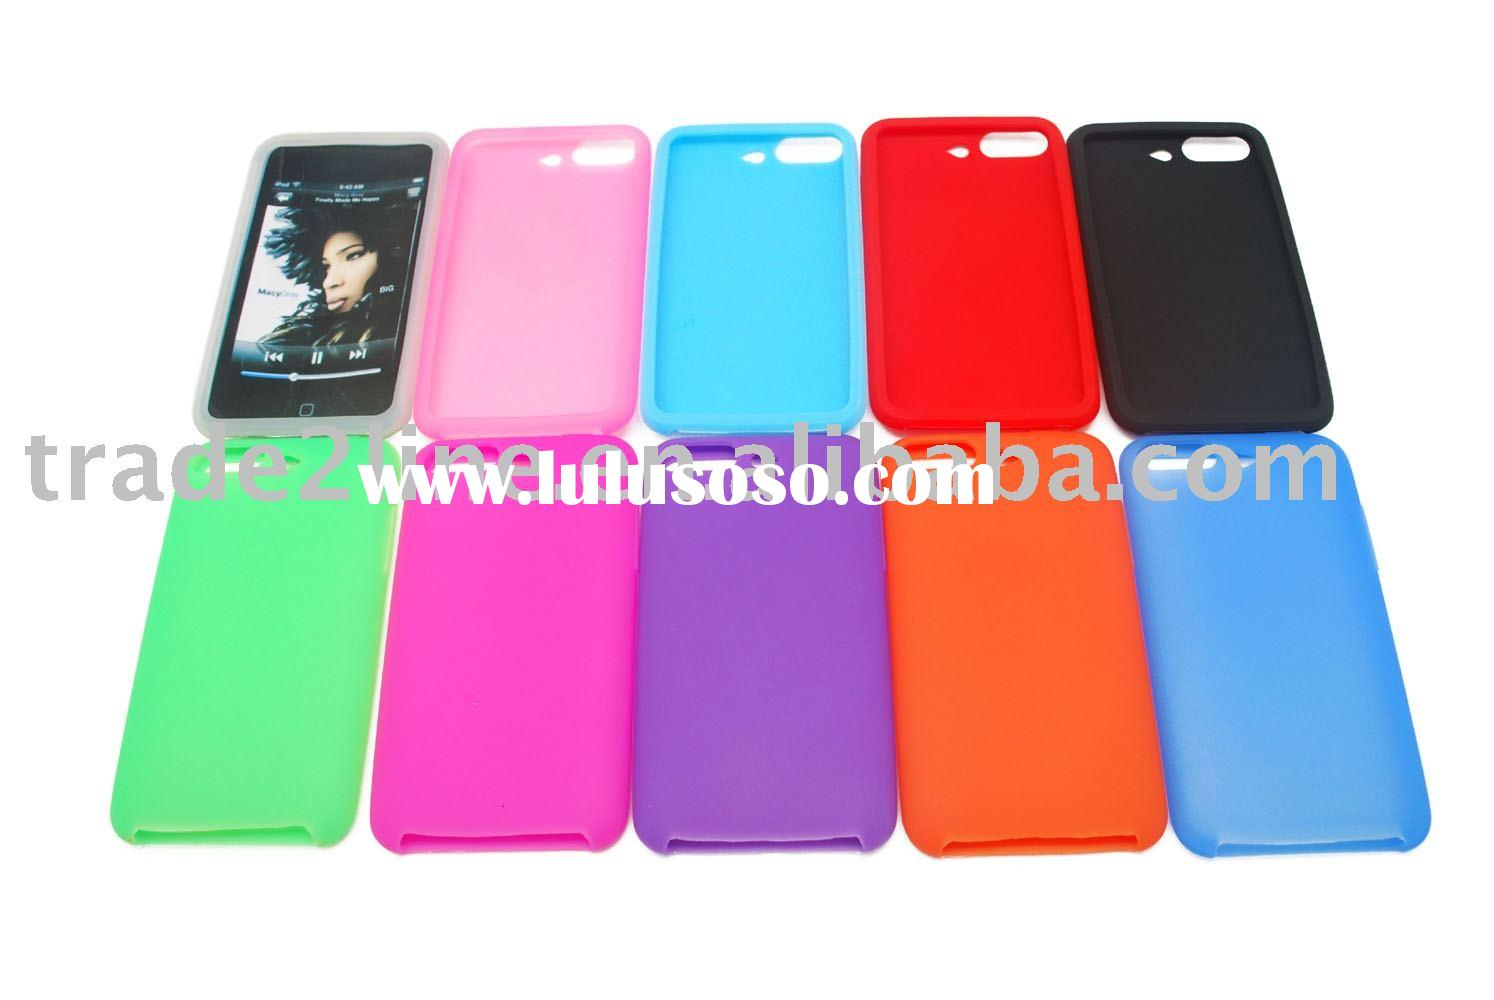 Silicon case for iPod touch 3rd Generation accessories for iPod